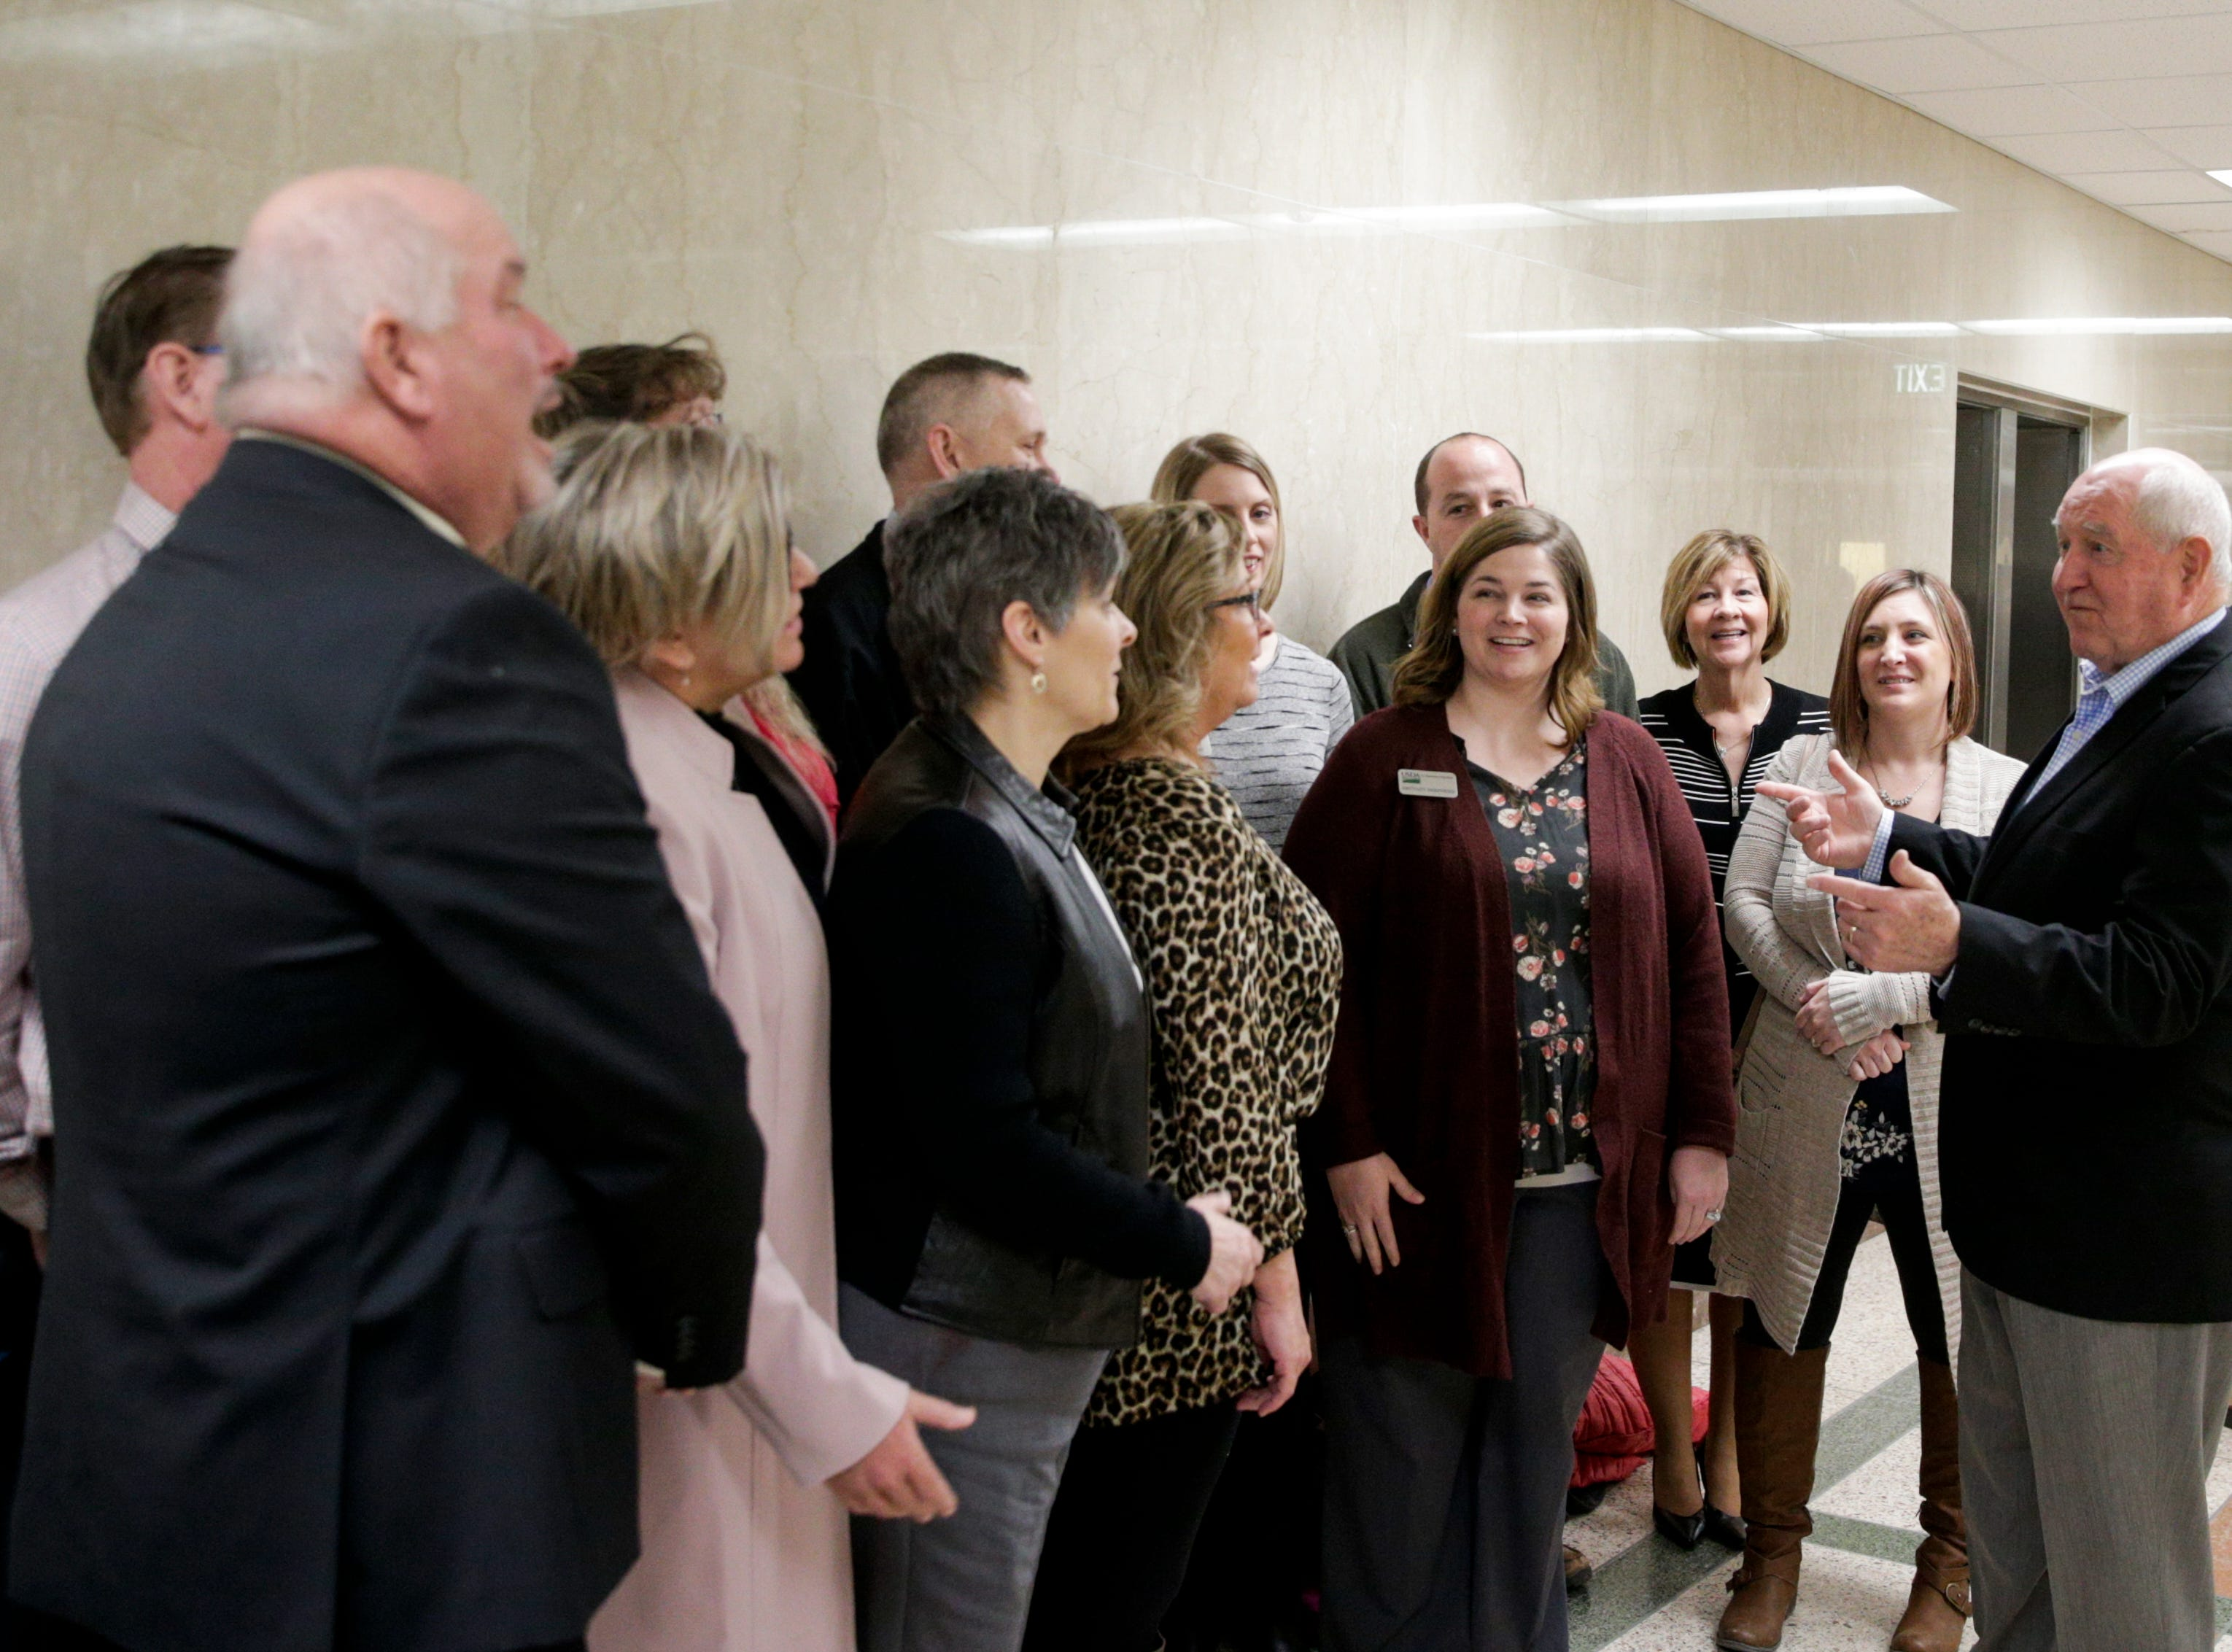 U.S. Secretary of Agriculture Sonny Perdue, right greets Department of Agriculture employees after speaking at an Ag Week Q&A conversation, Tuesday, April 2, 2019, at Purdue University in West Lafayette.